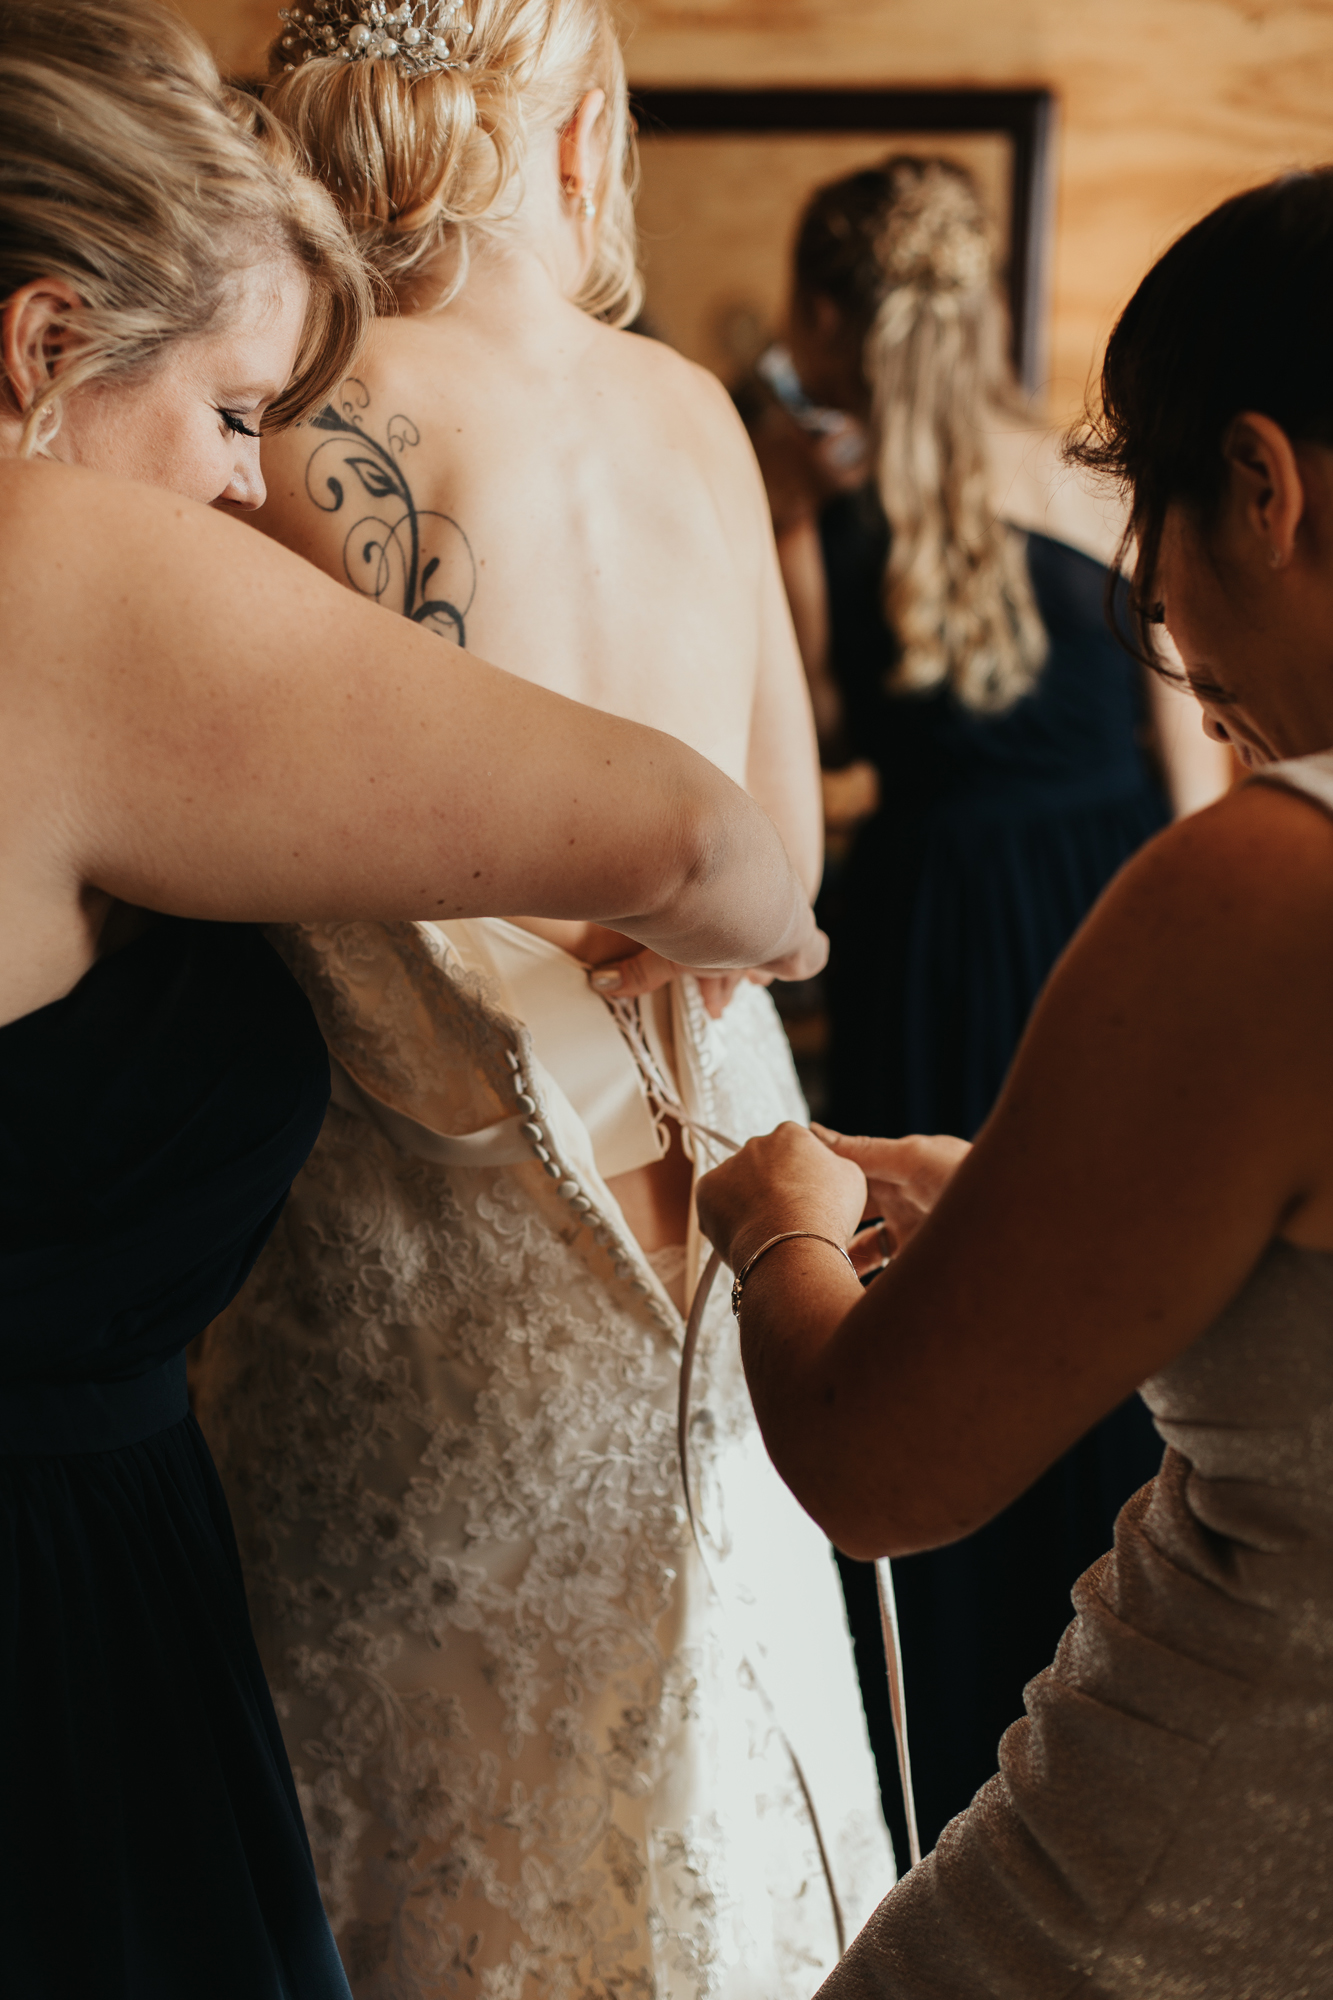 bride-getting-ready-wedding-day-photography-the-farm-at-beeber-drive-muncy-pa